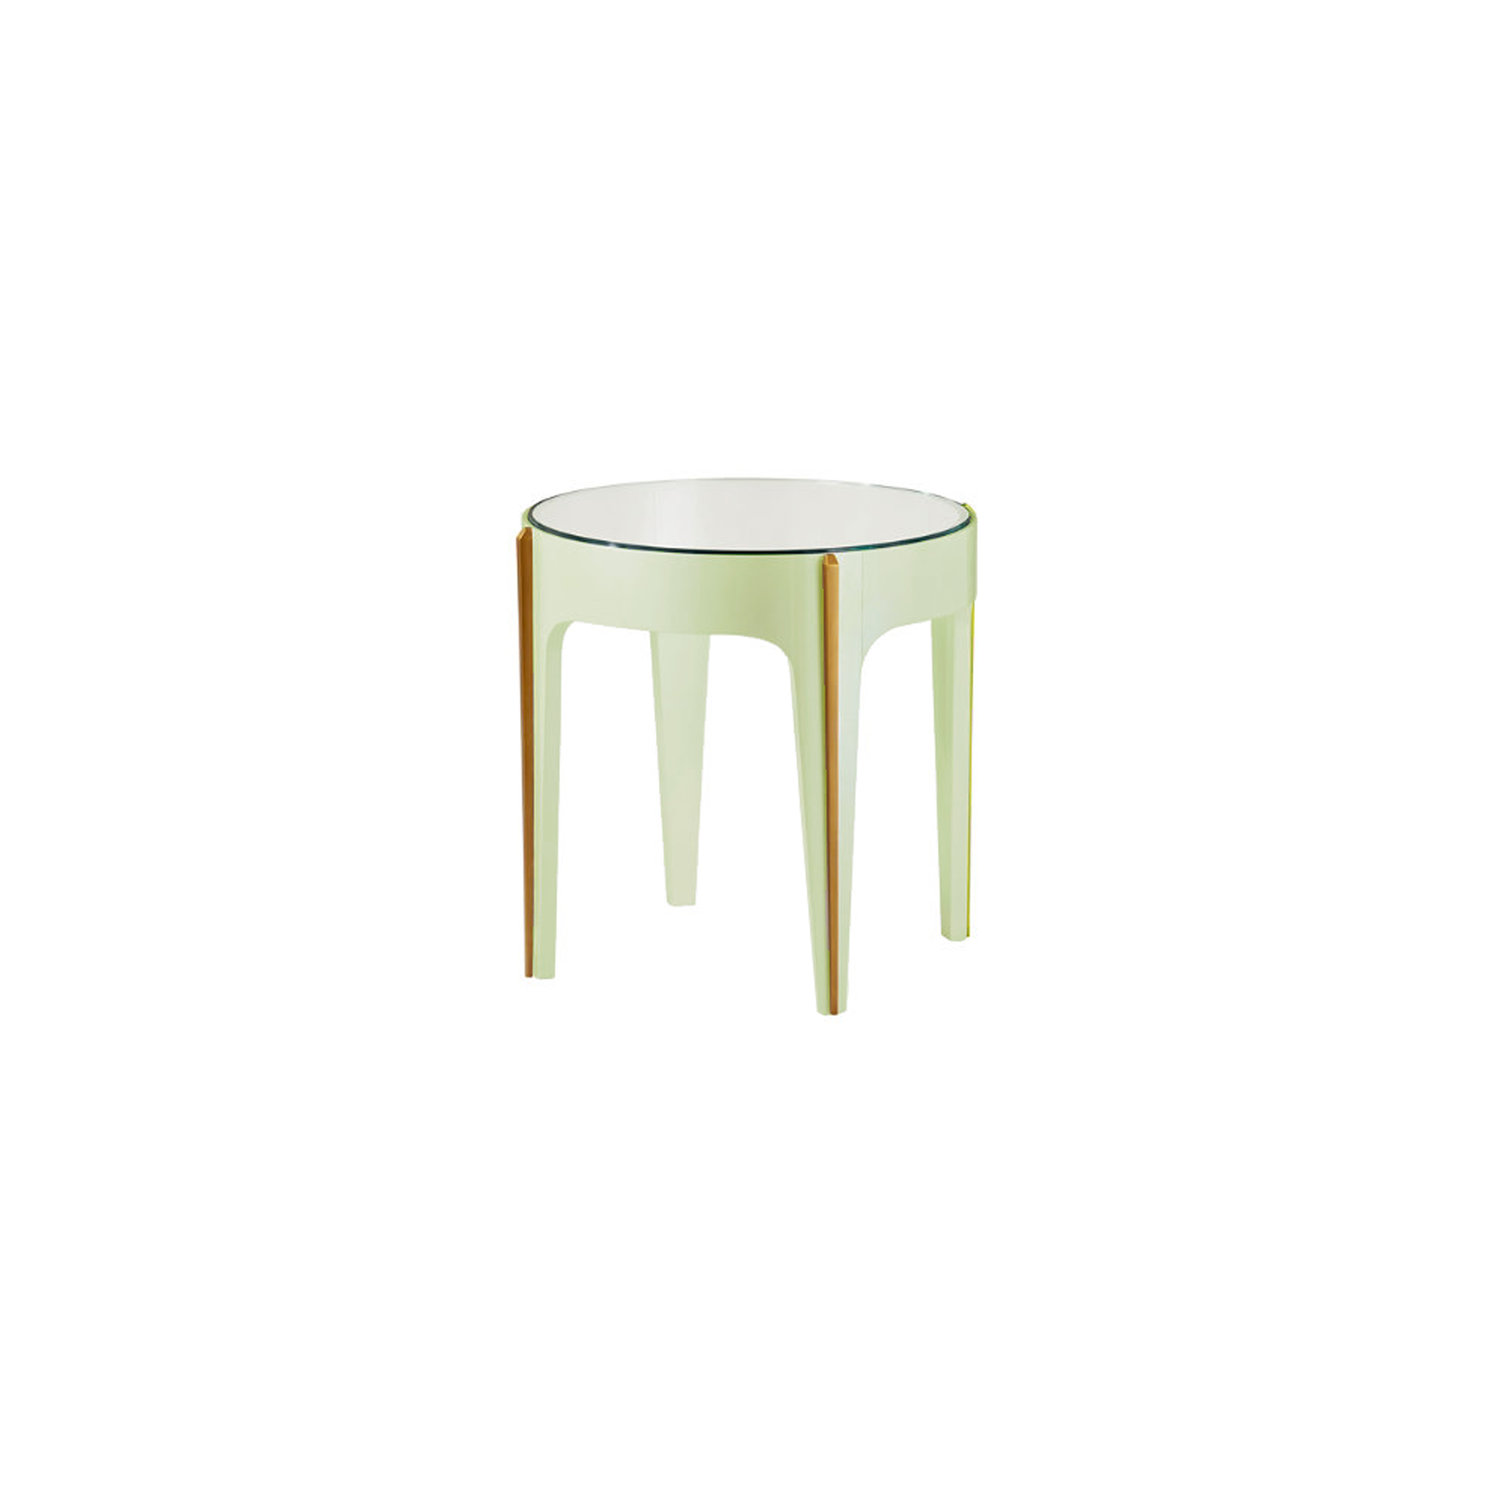 brass mounted accent table reside home side celadon sheesham wood console inch round tablecloth navy blue tall end patio grill green marble top coffee silver area rug mats rustic